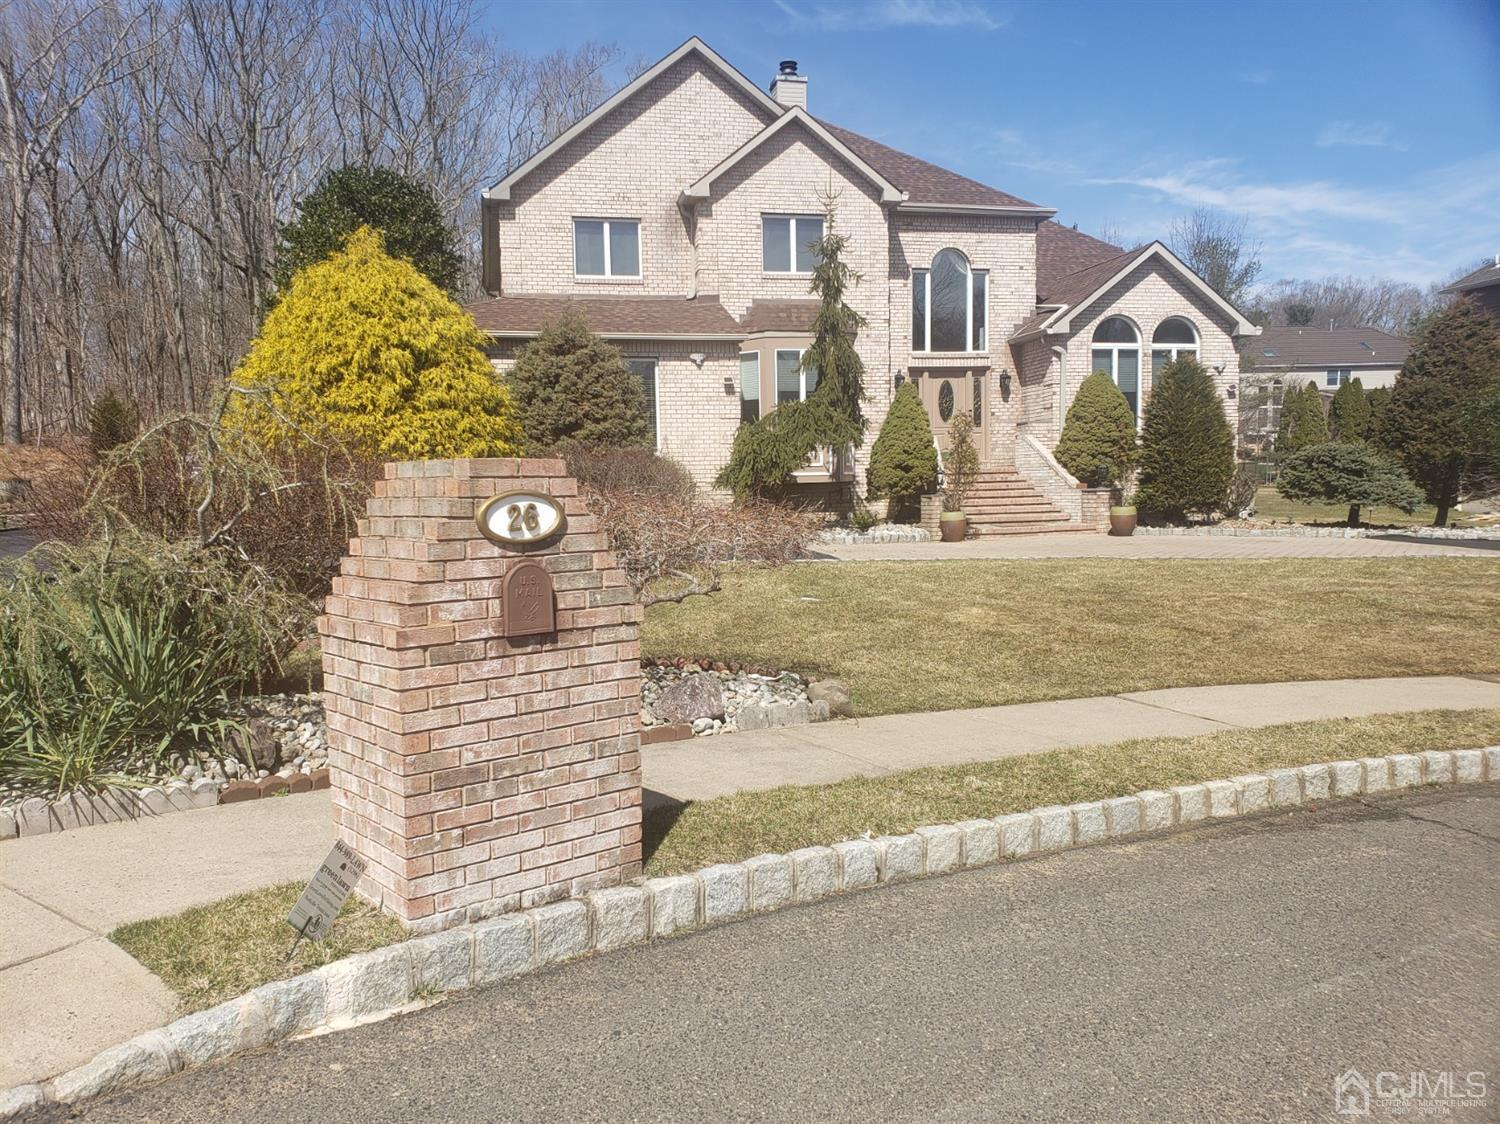 Beautiful brick front colonial on 1/2 acre